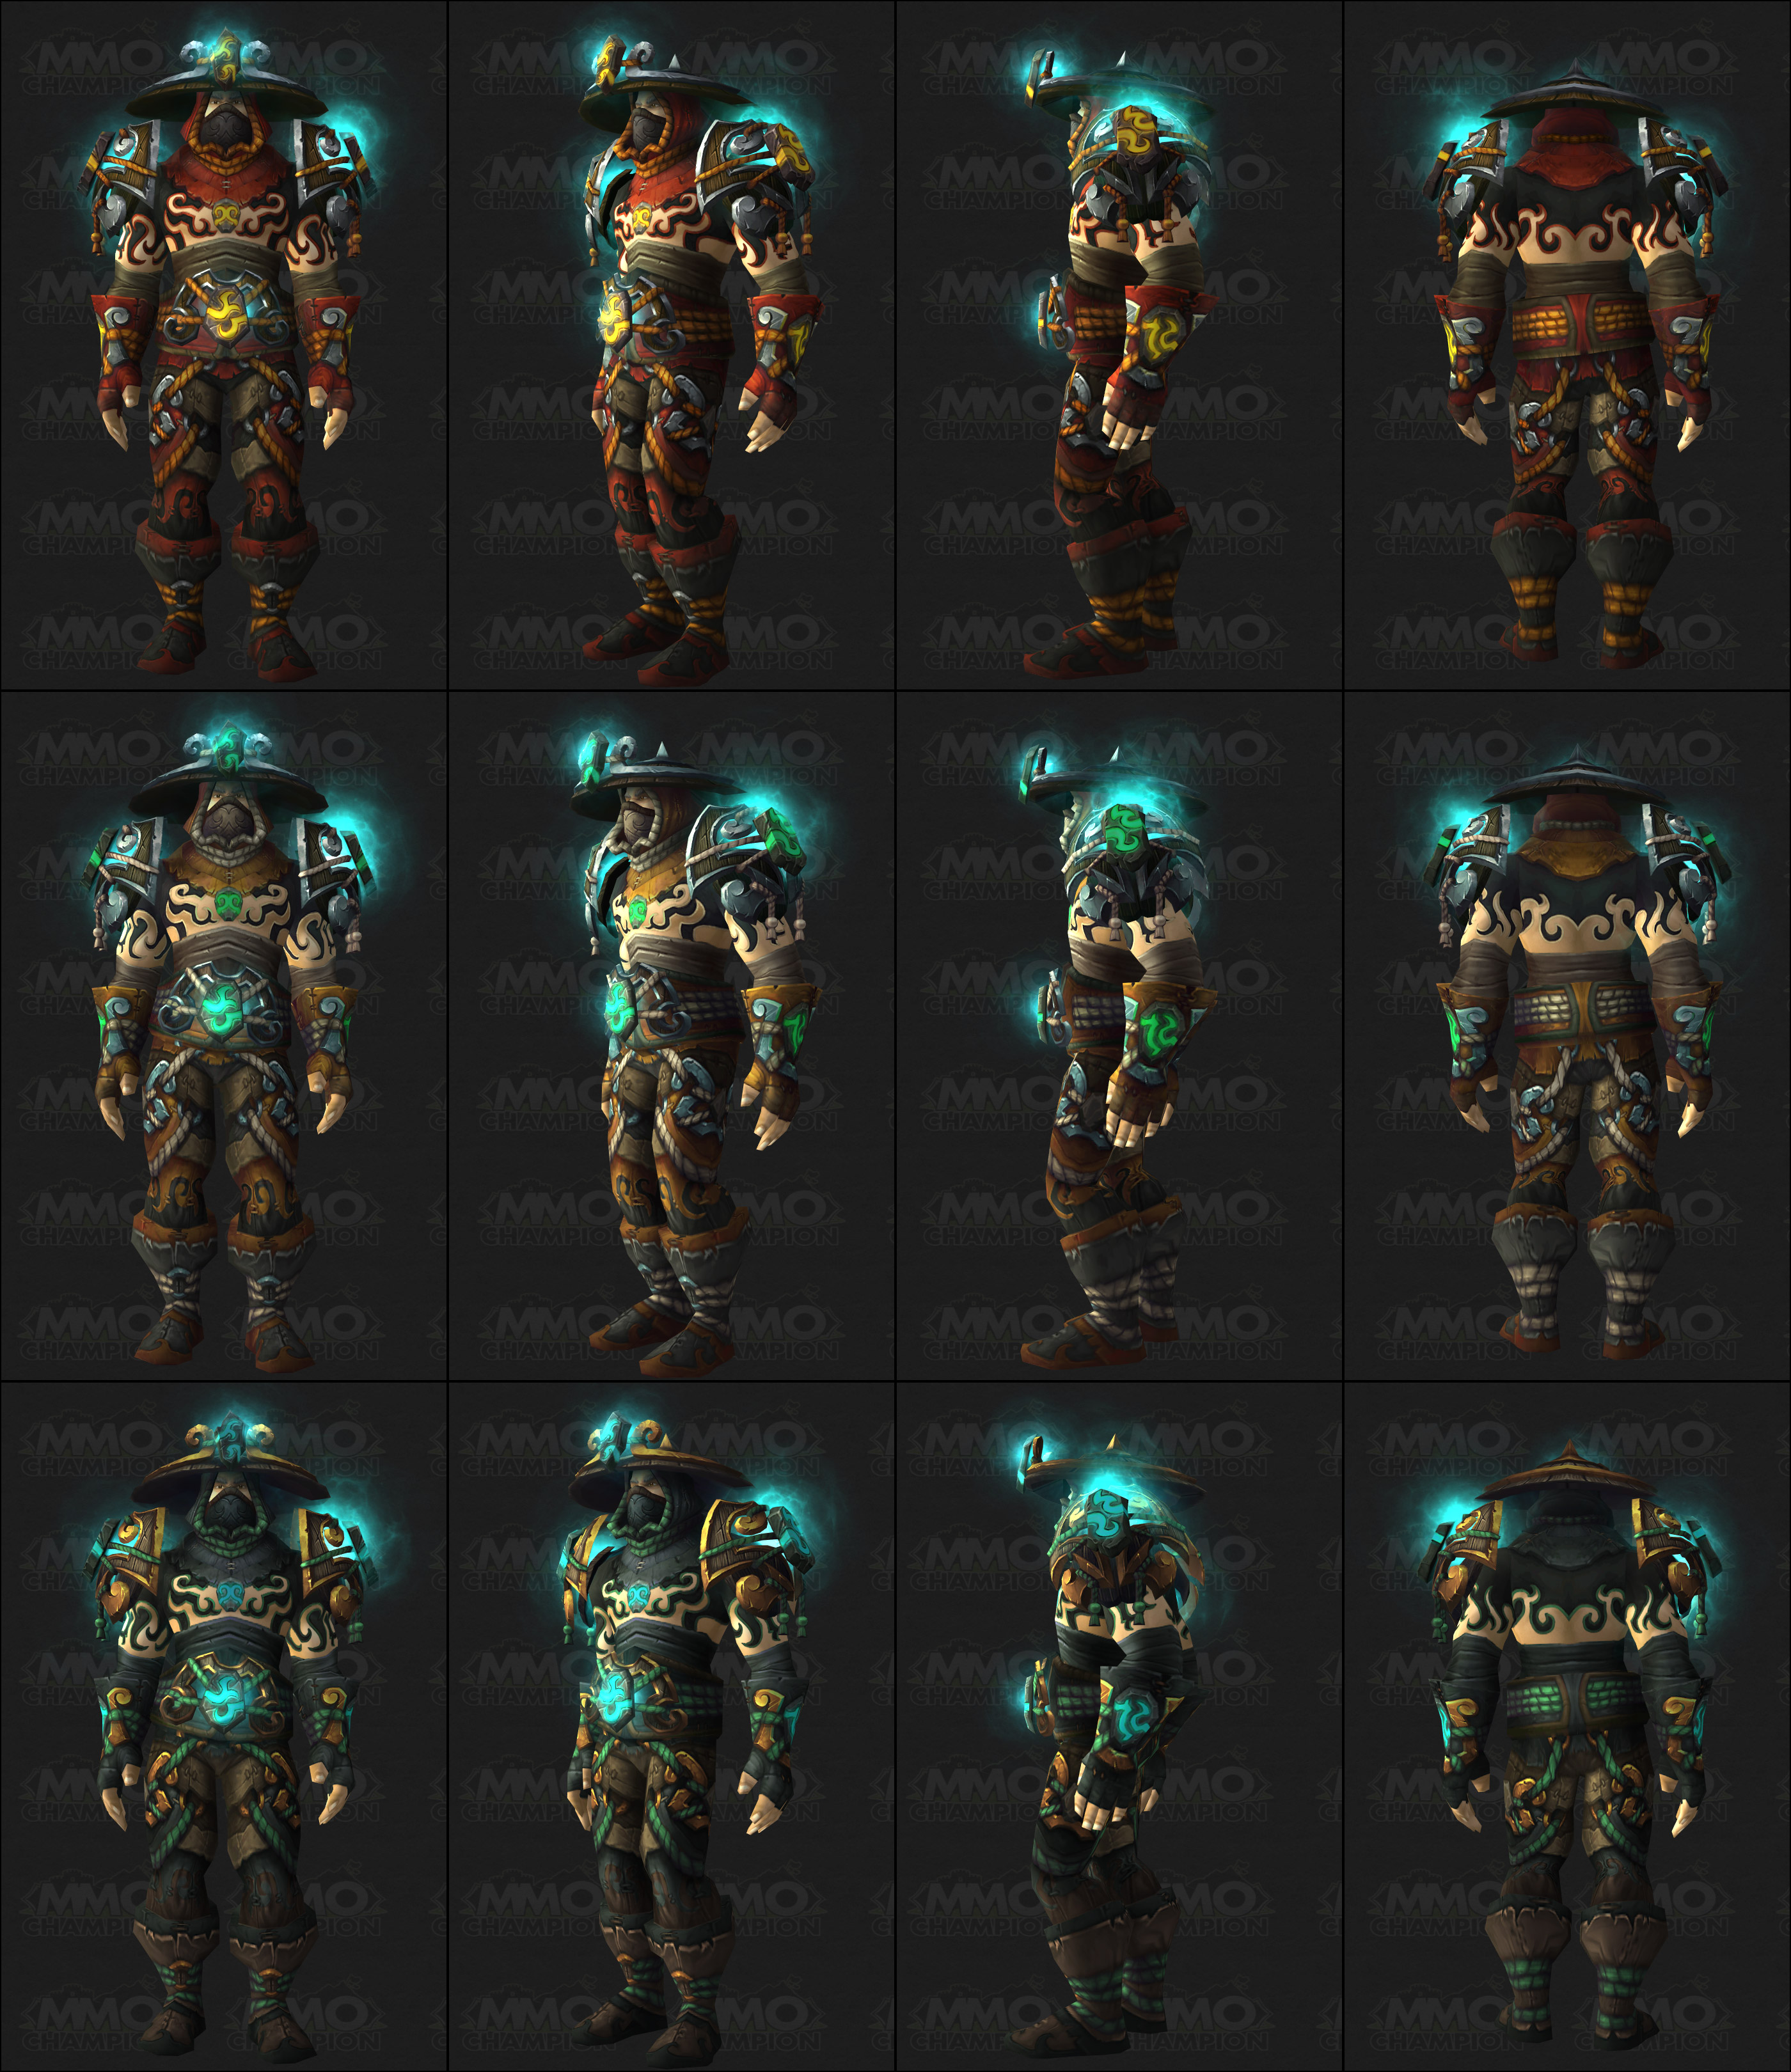 Monk Tier 15 and Season 13 Armor Sets Preview